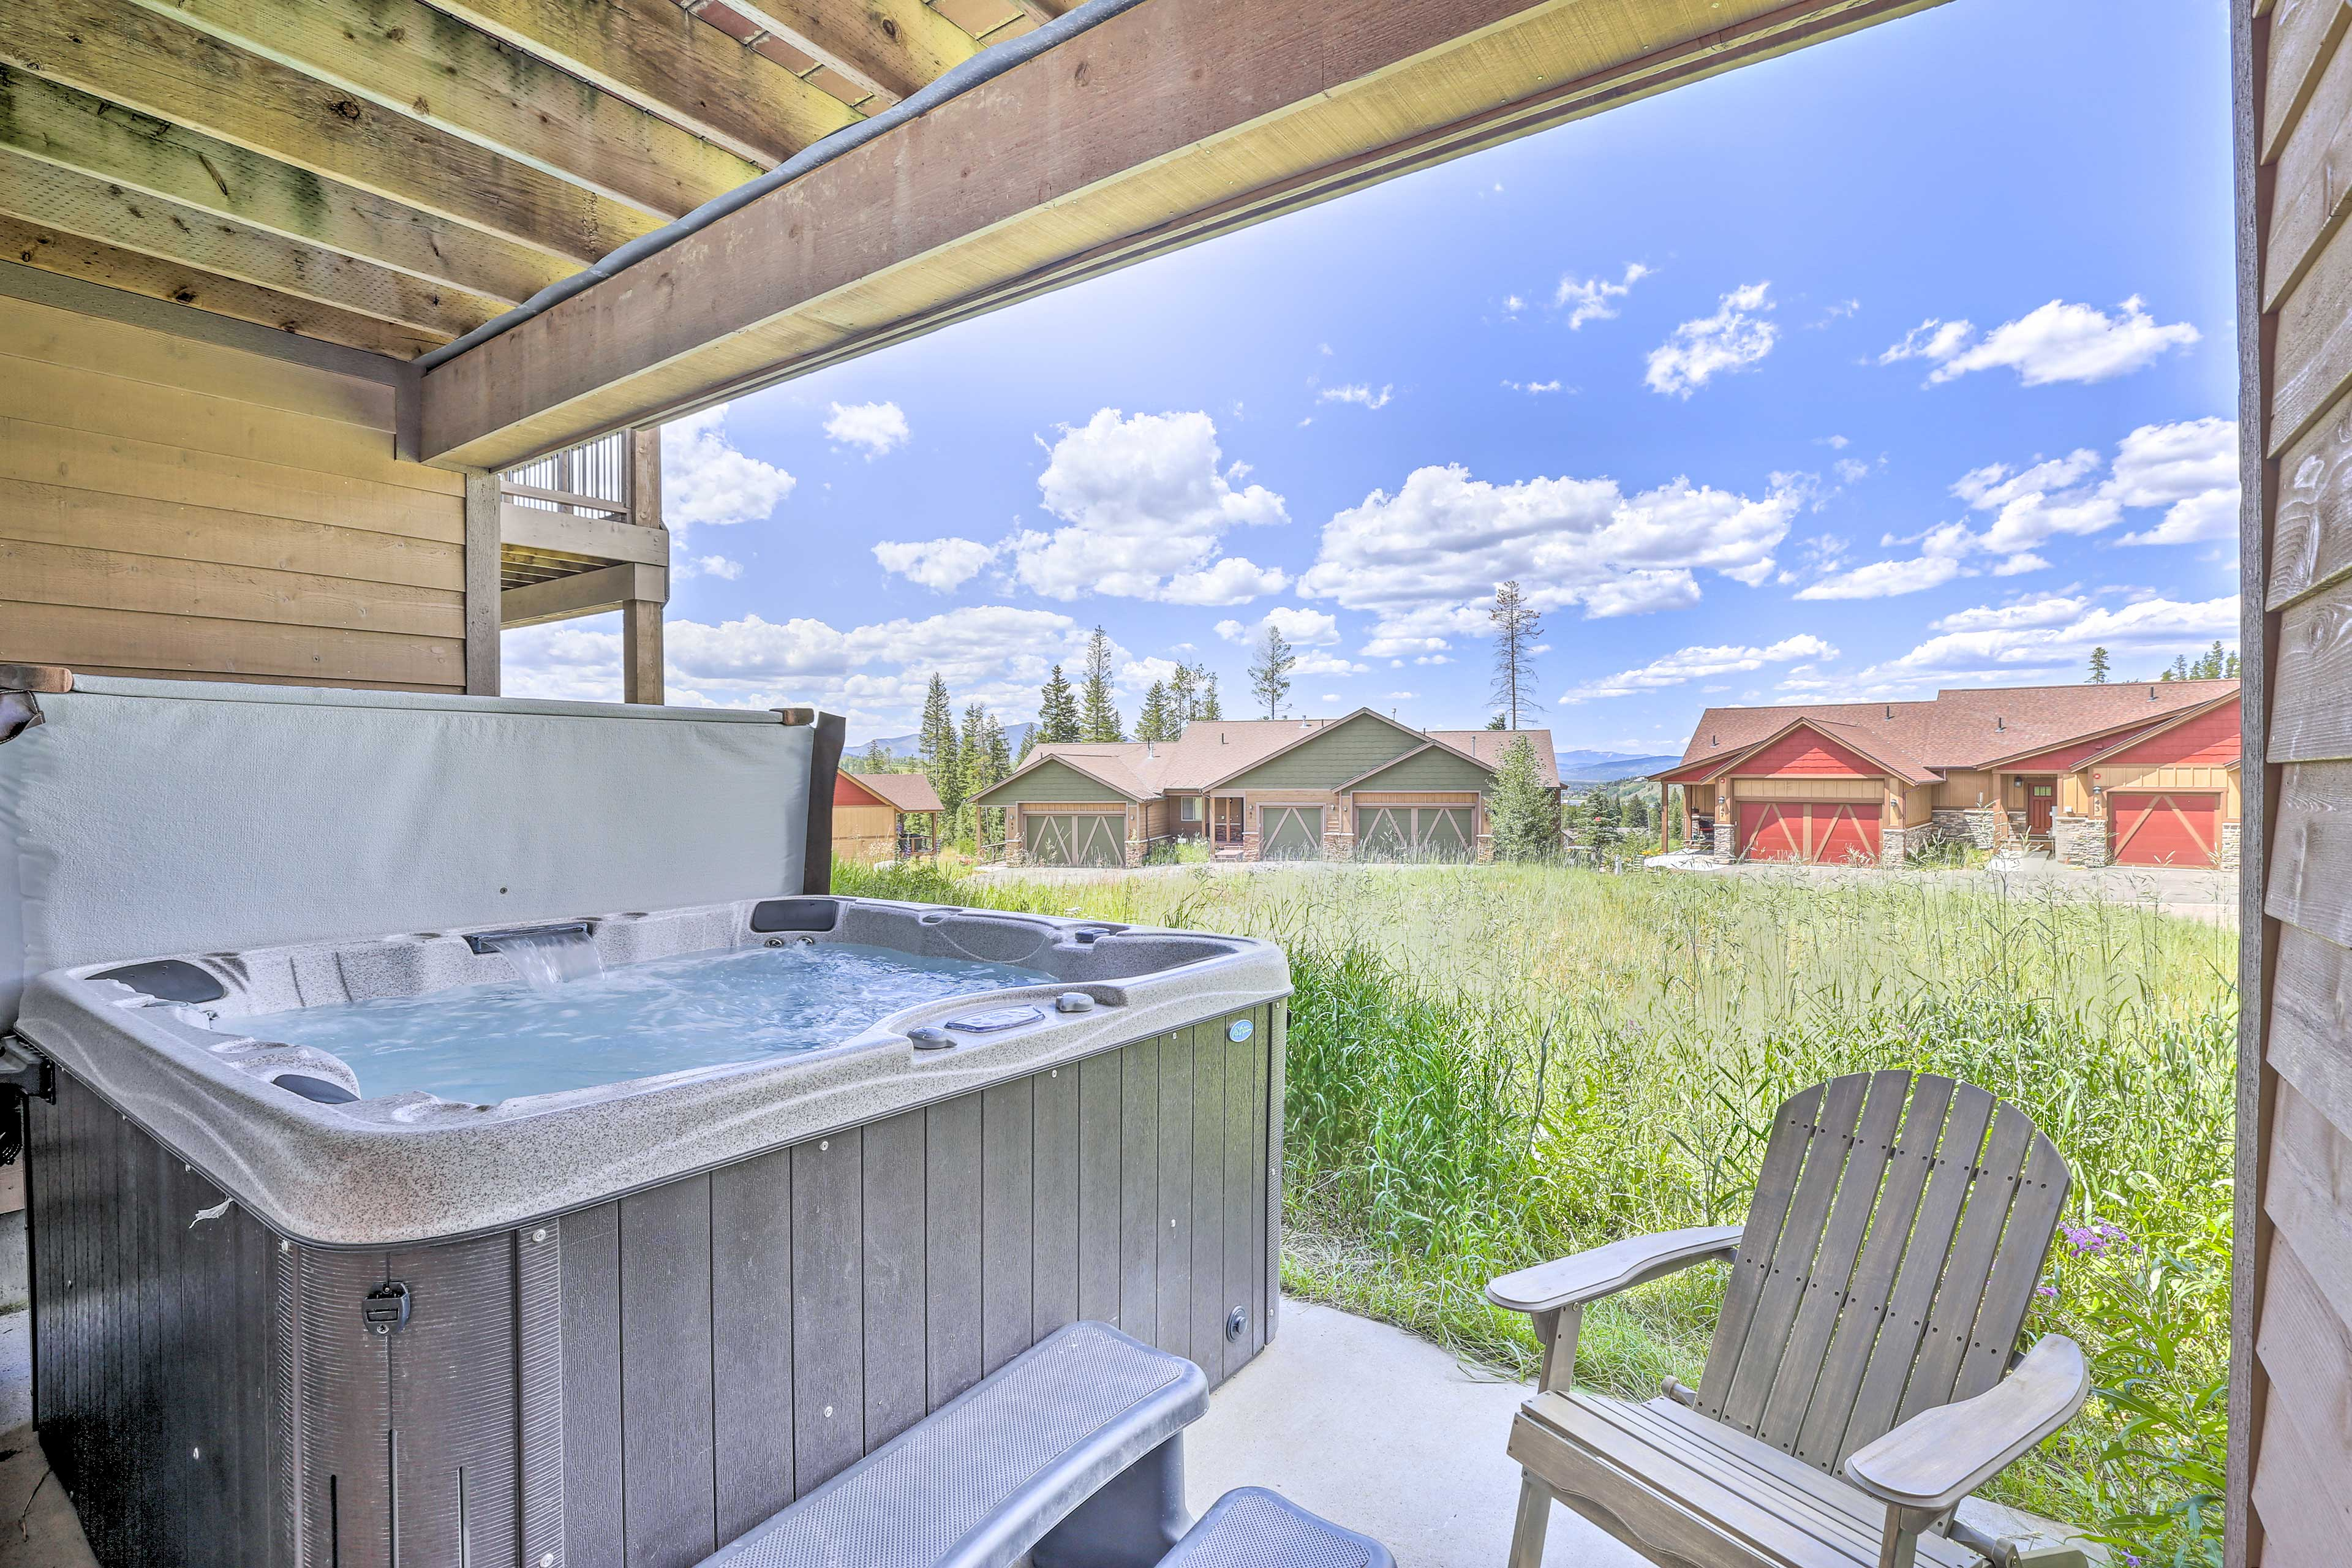 Breathe in the mountain air while you soak tired muscles in the hot tub.